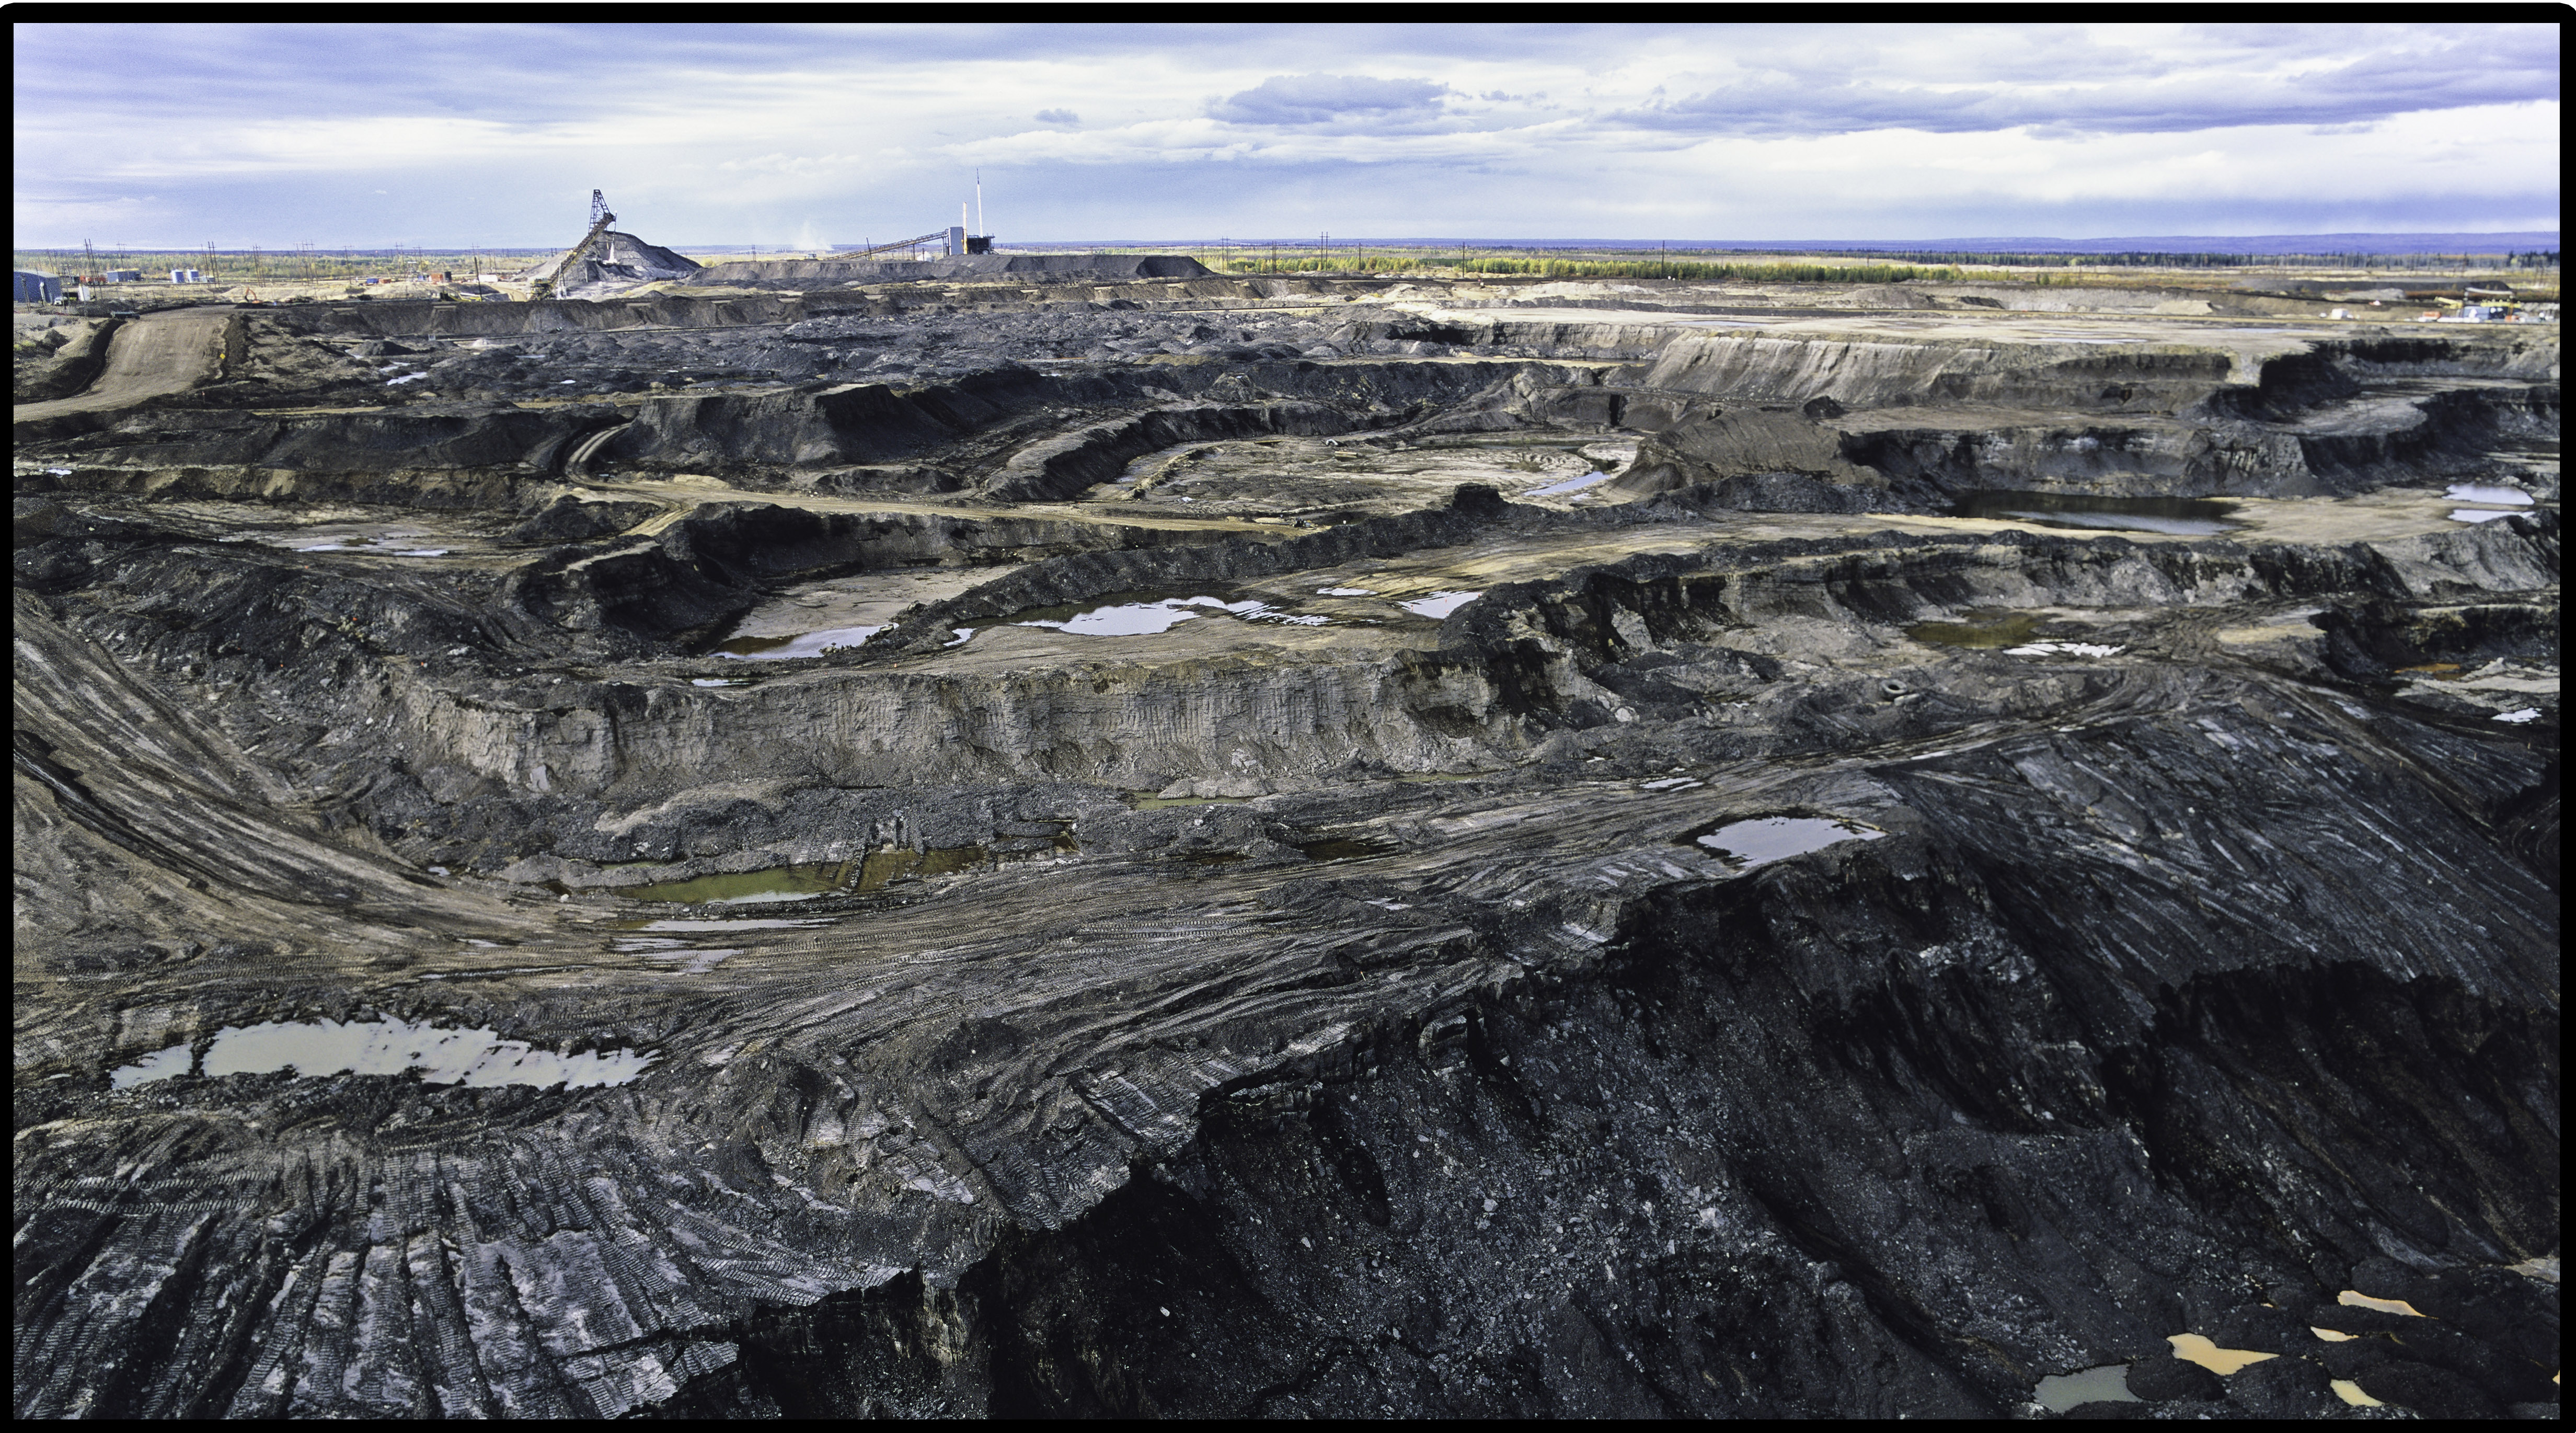 tar sands in alberta Oil sands - general the alberta oil sands constitute one of the largest energy reserves on the planet unlike conventional oil deposits which feature liquid oil captured in porous rock, the oil sands are sand formations with a relatively low content of highly viscous oil.